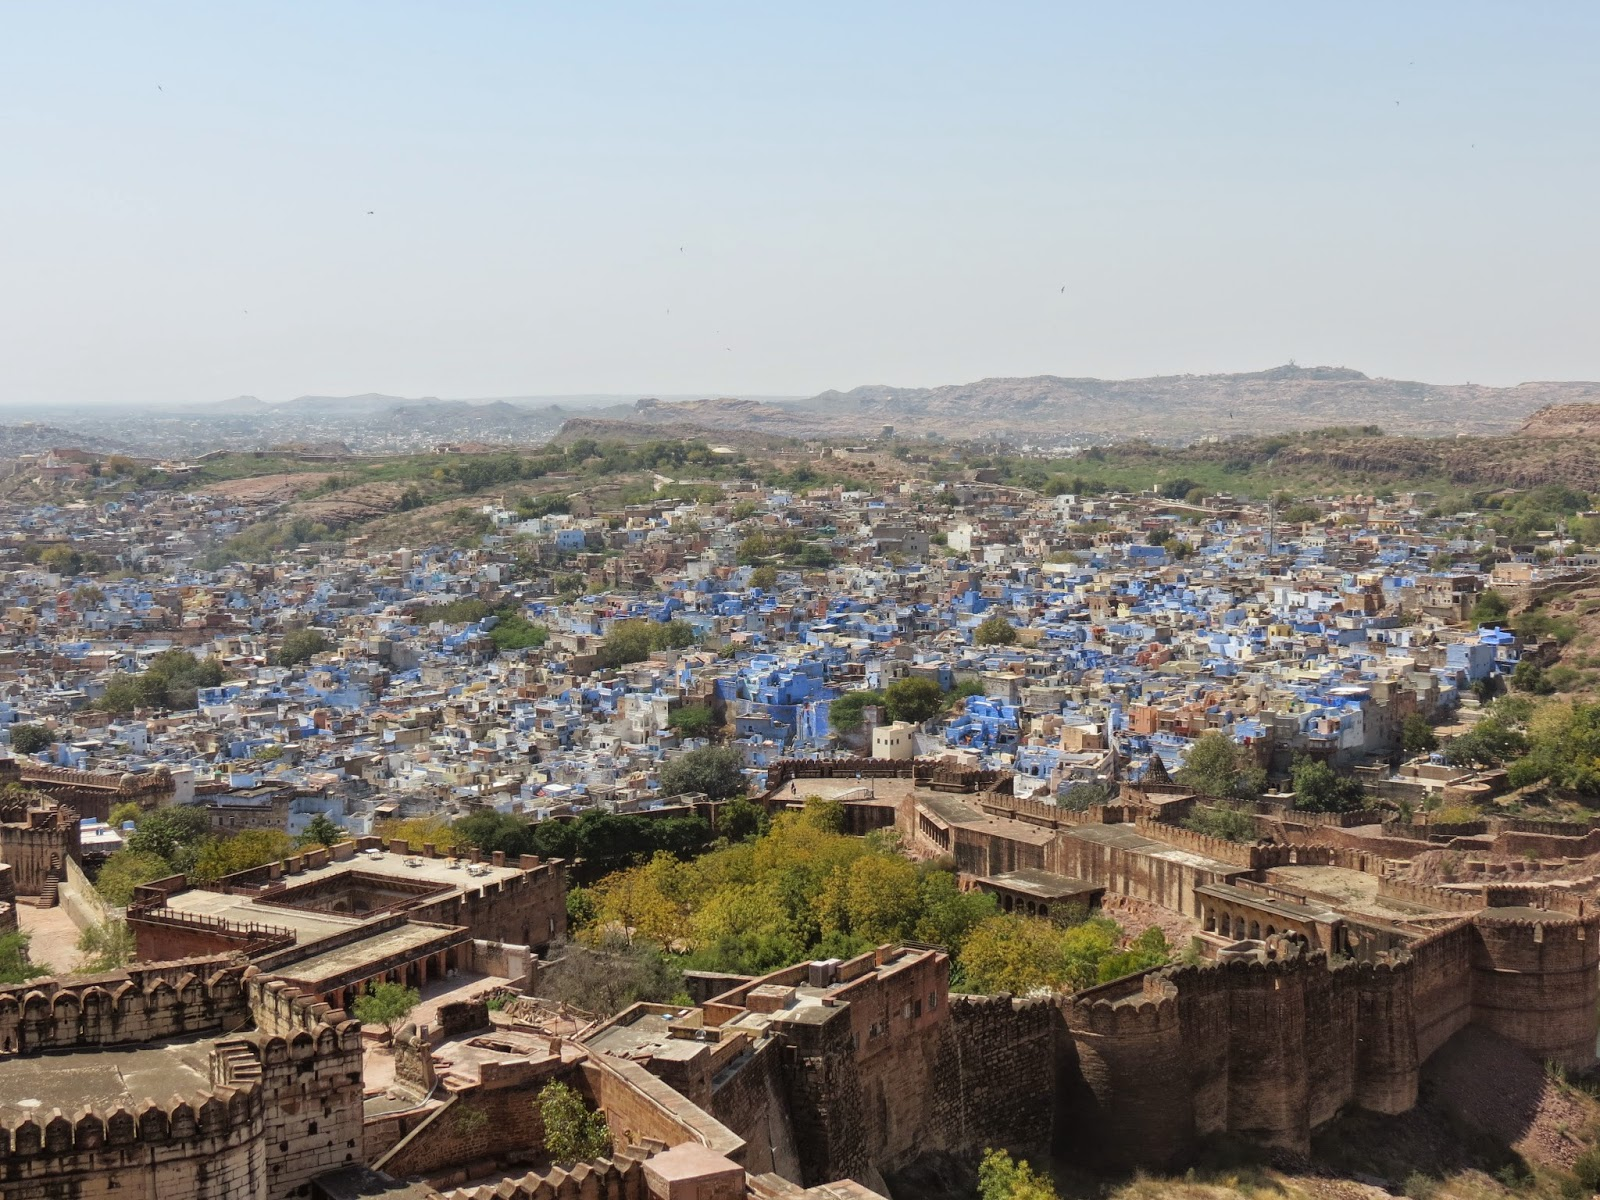 Jodhpur photos, Jodhpur pictures, blue city india